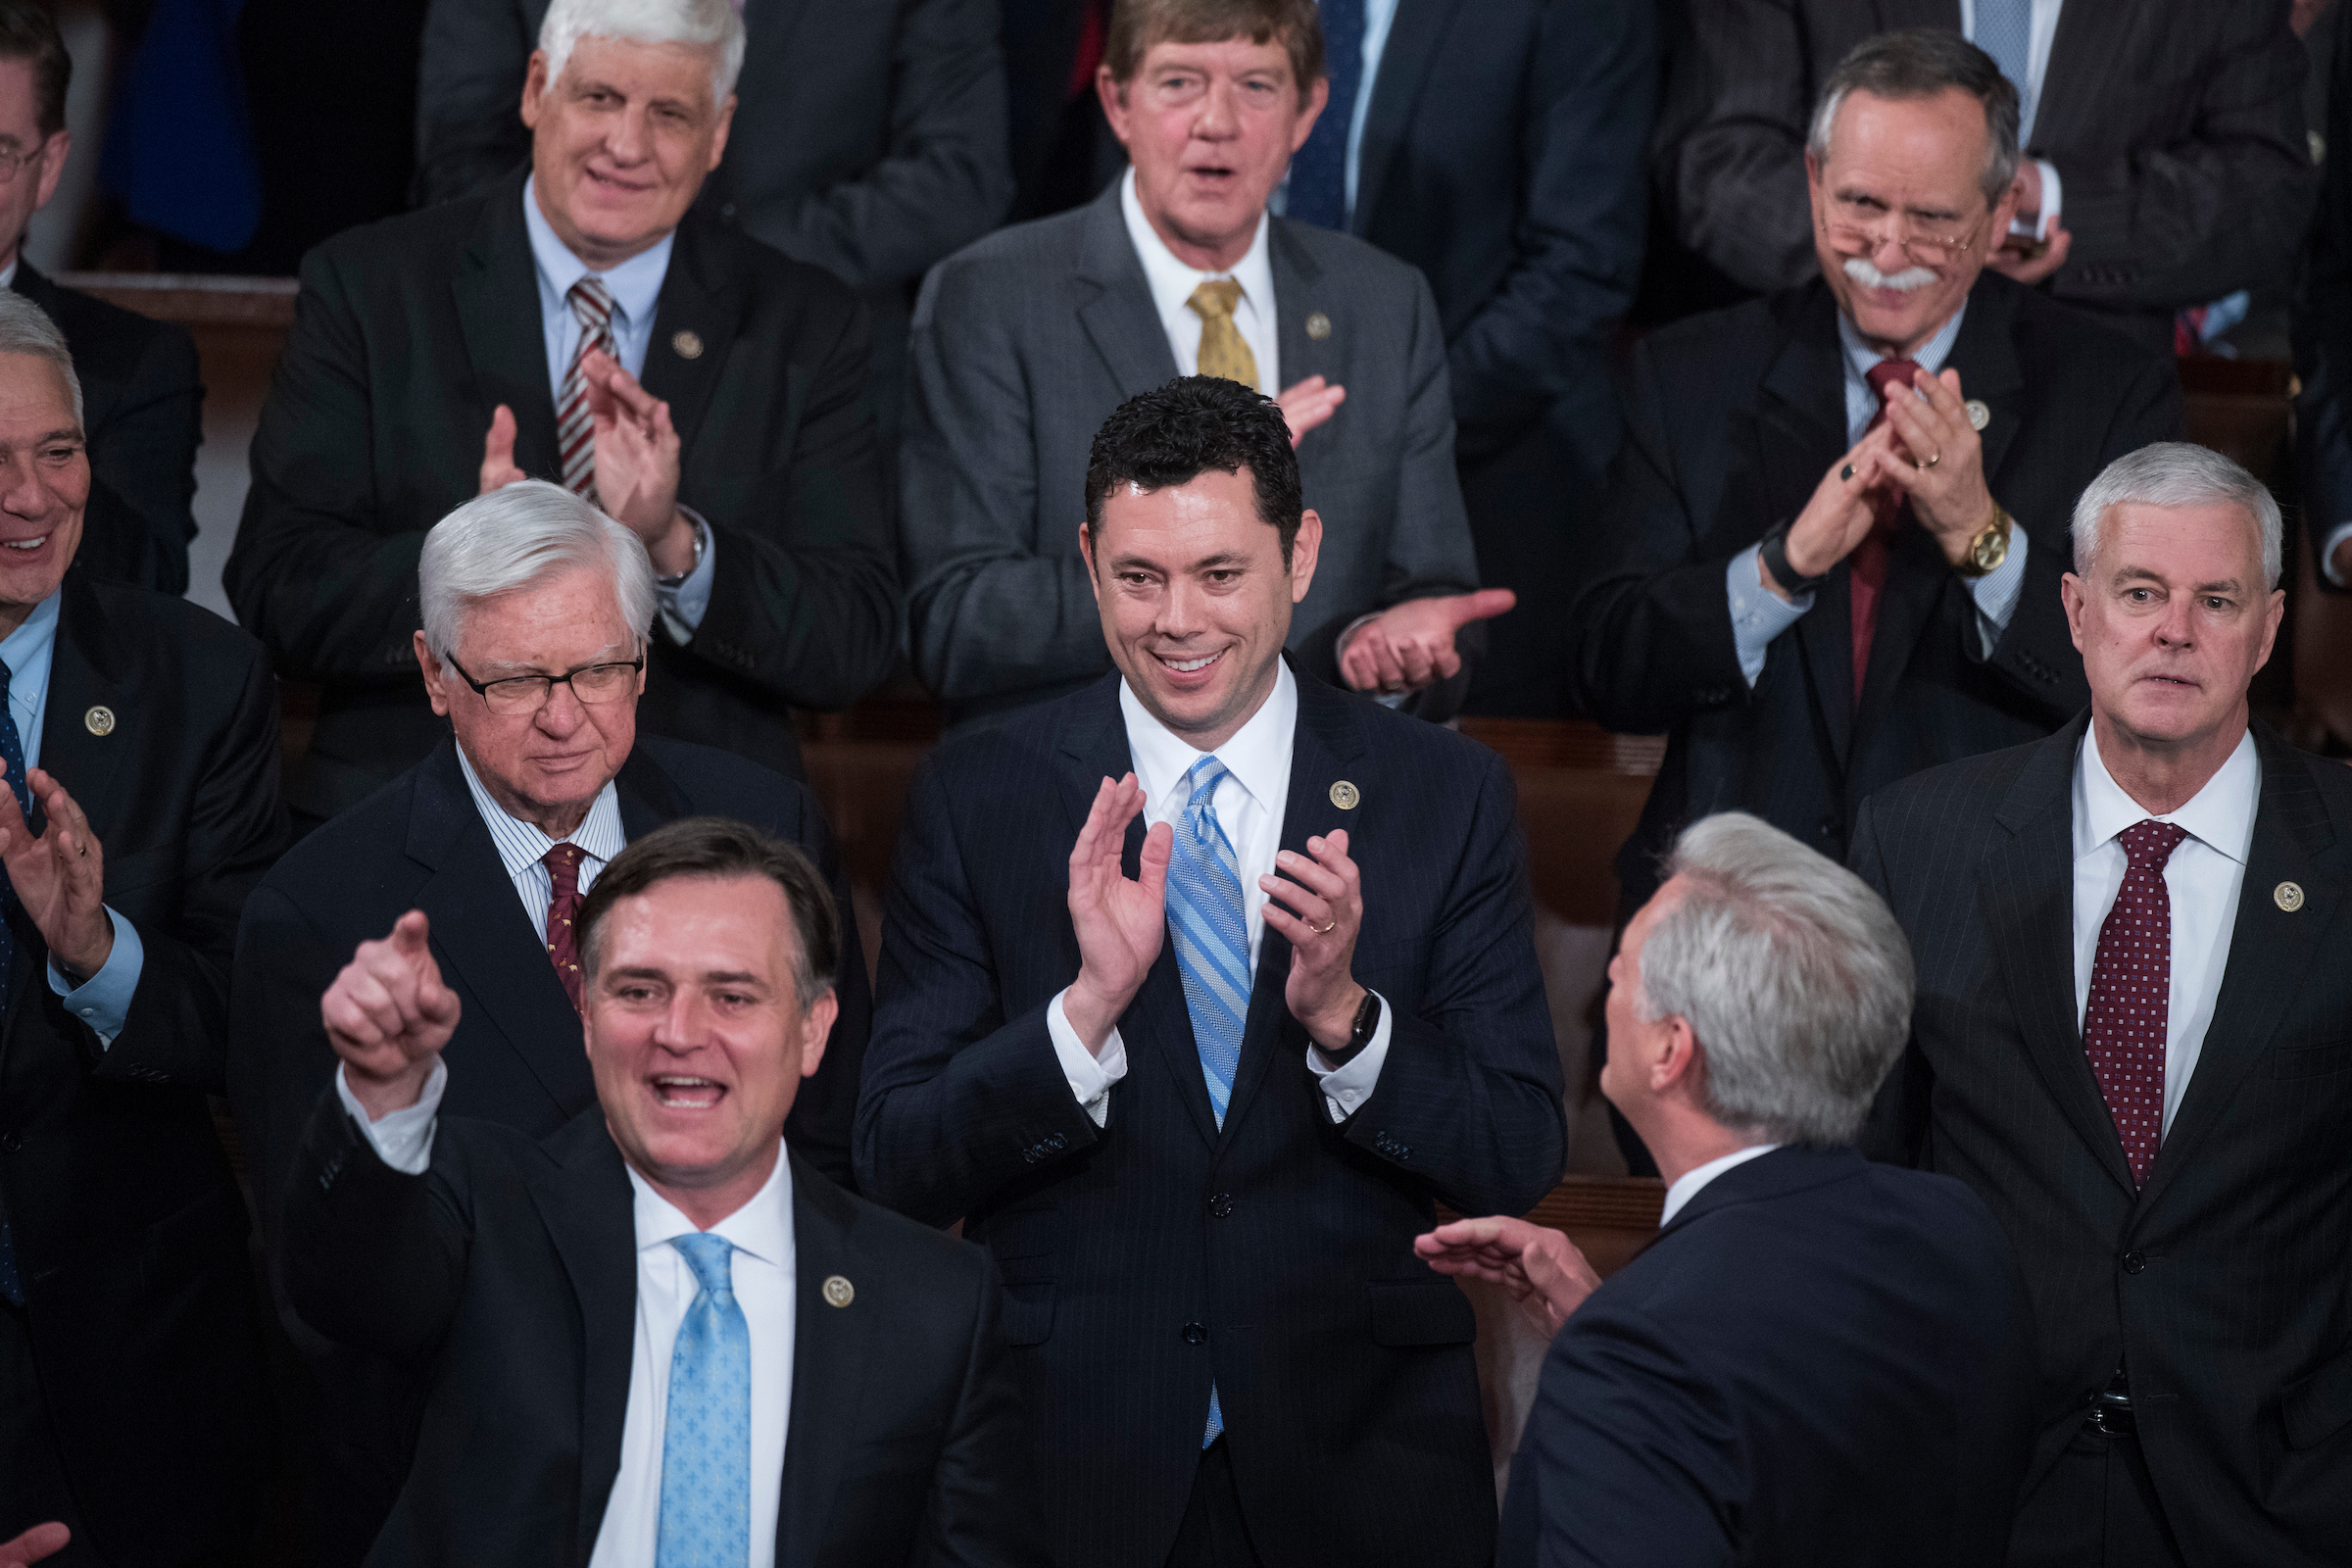 UNITED STATES - FEBRUARY 28: Reps. Jason Chaffetz, R-Utah, center, and Luke Messer, R-Ind., lower left, are seen with other GOP members in the House Chamber before President Donald Trump addressed a joint session of Congress in the Capitol, February 28, 2017. (Photo By Tom Williams/CQ Roll Call)